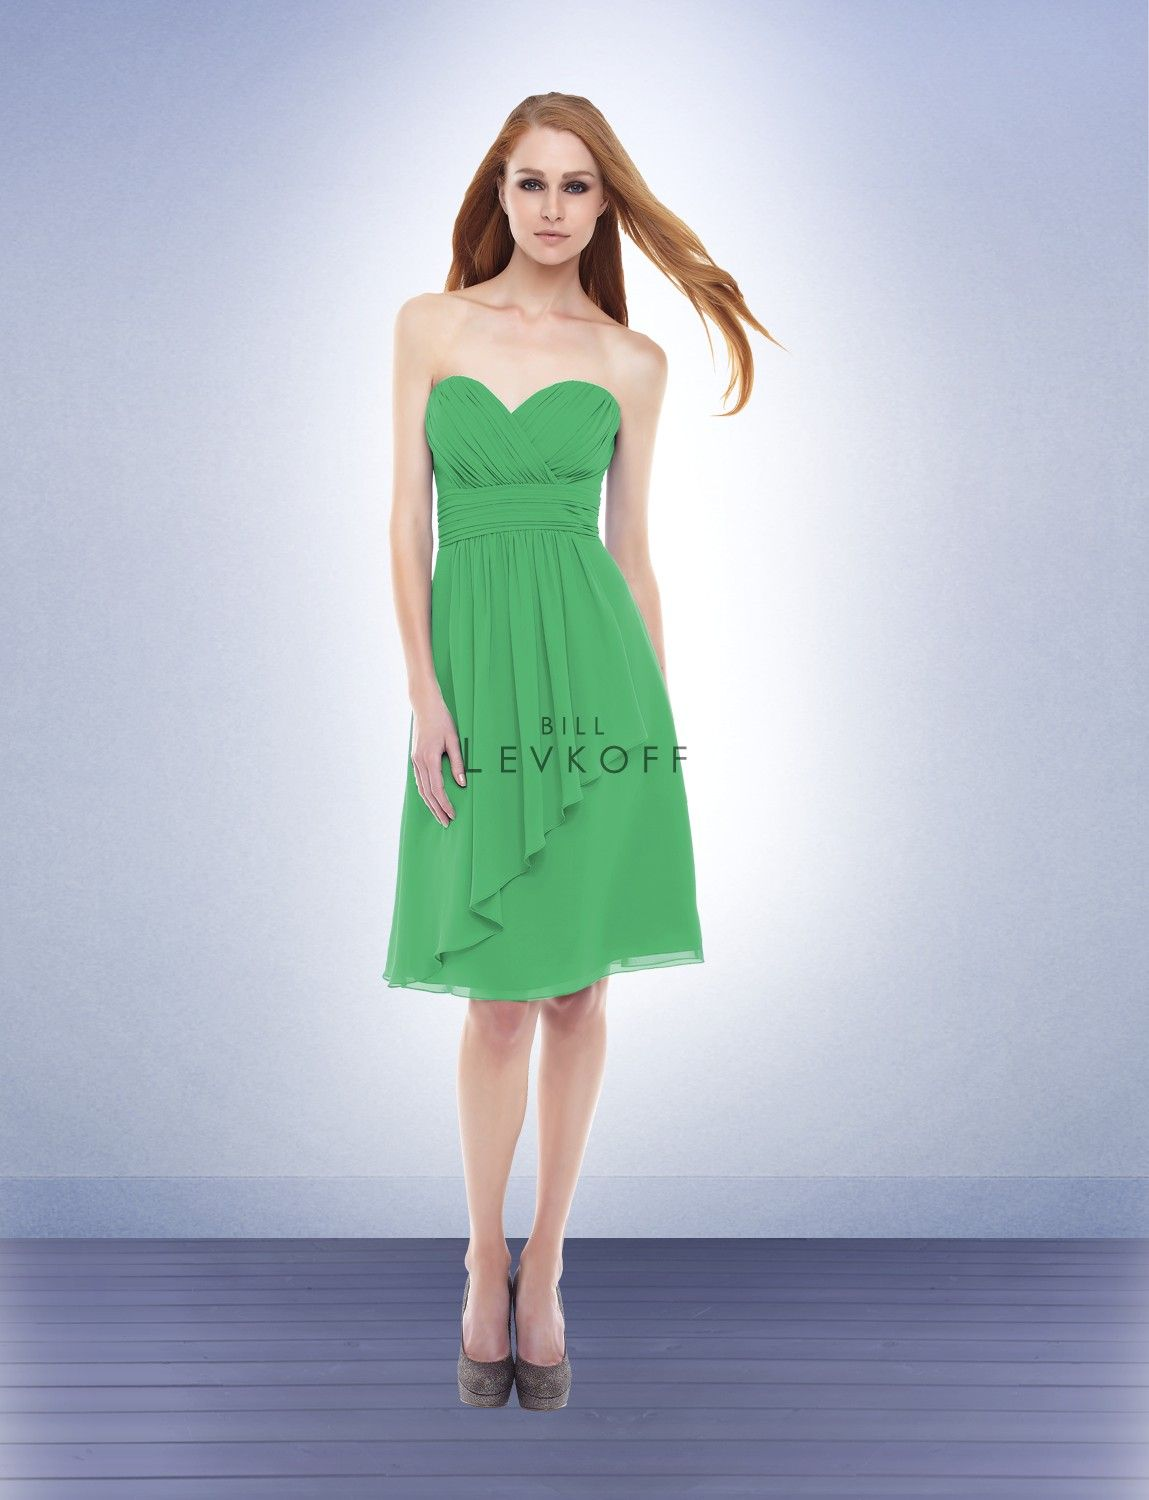 Bridesmaid dress style 157 kelly green sarahs wedding bridesmaid dress style 157 kelly green ombrellifo Gallery